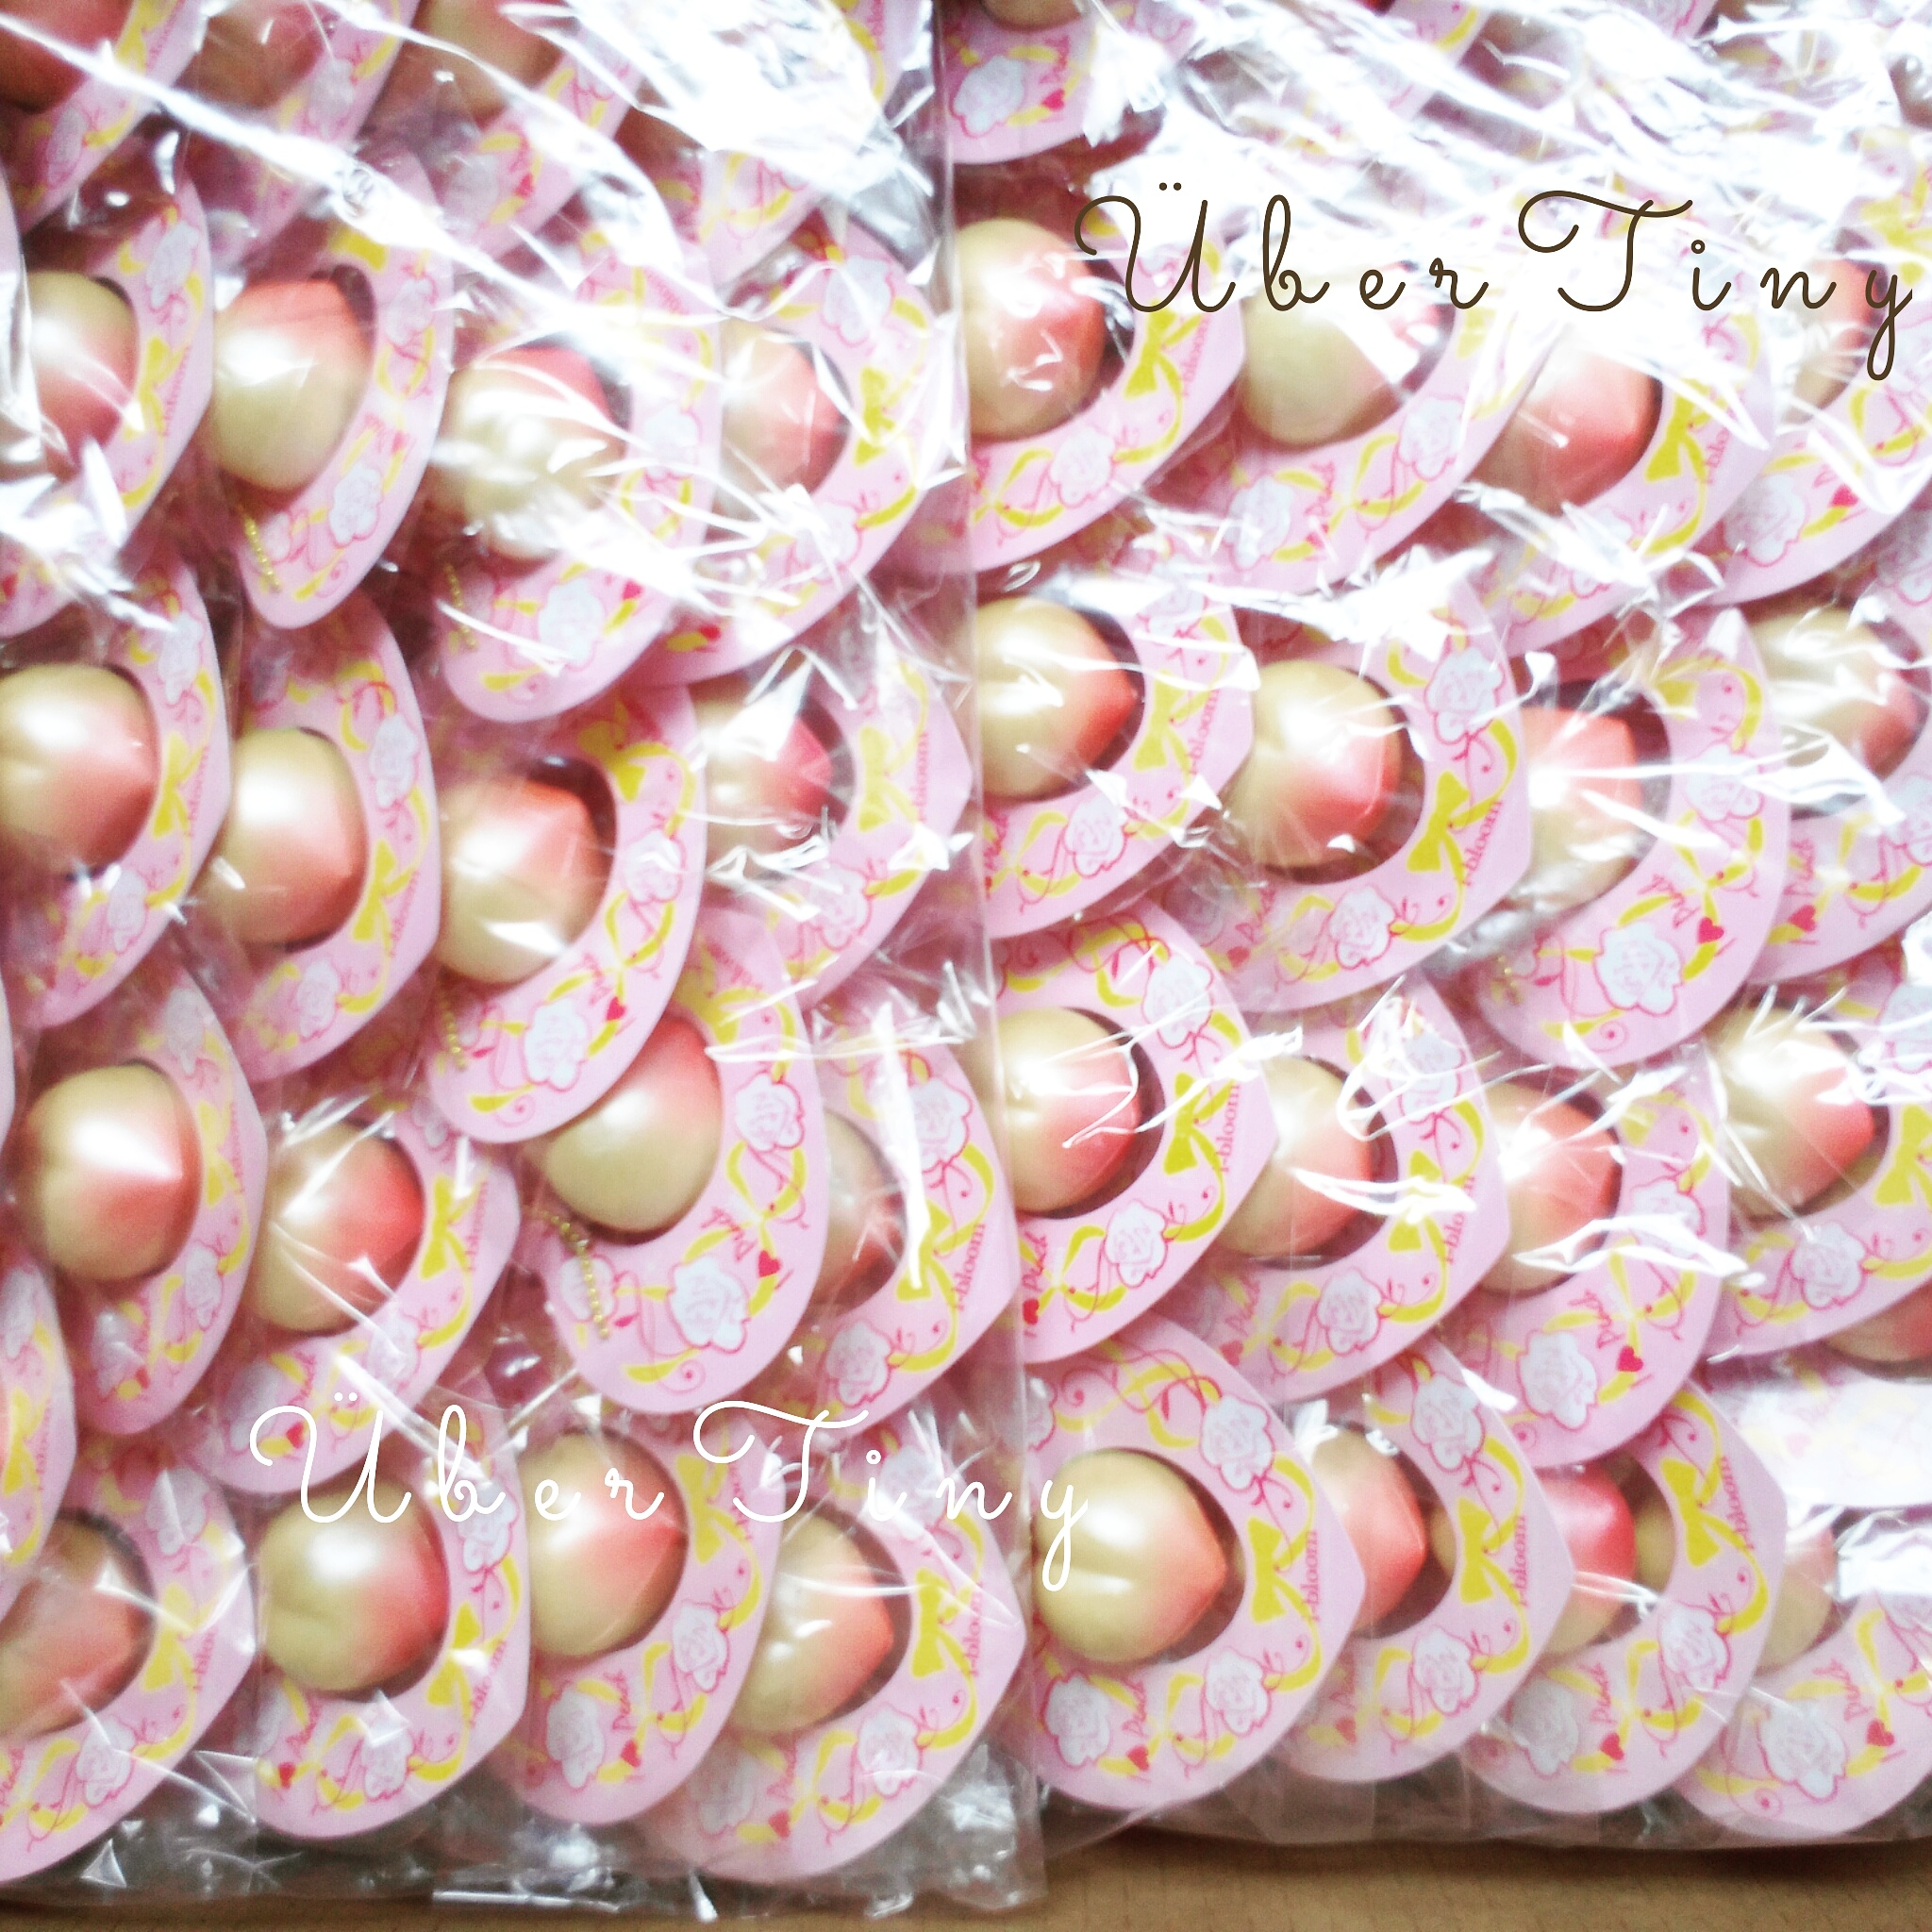 Squishy shop sale -  Ibloom Mini Peach Squishy Licensed Last Few Thumbnail 3